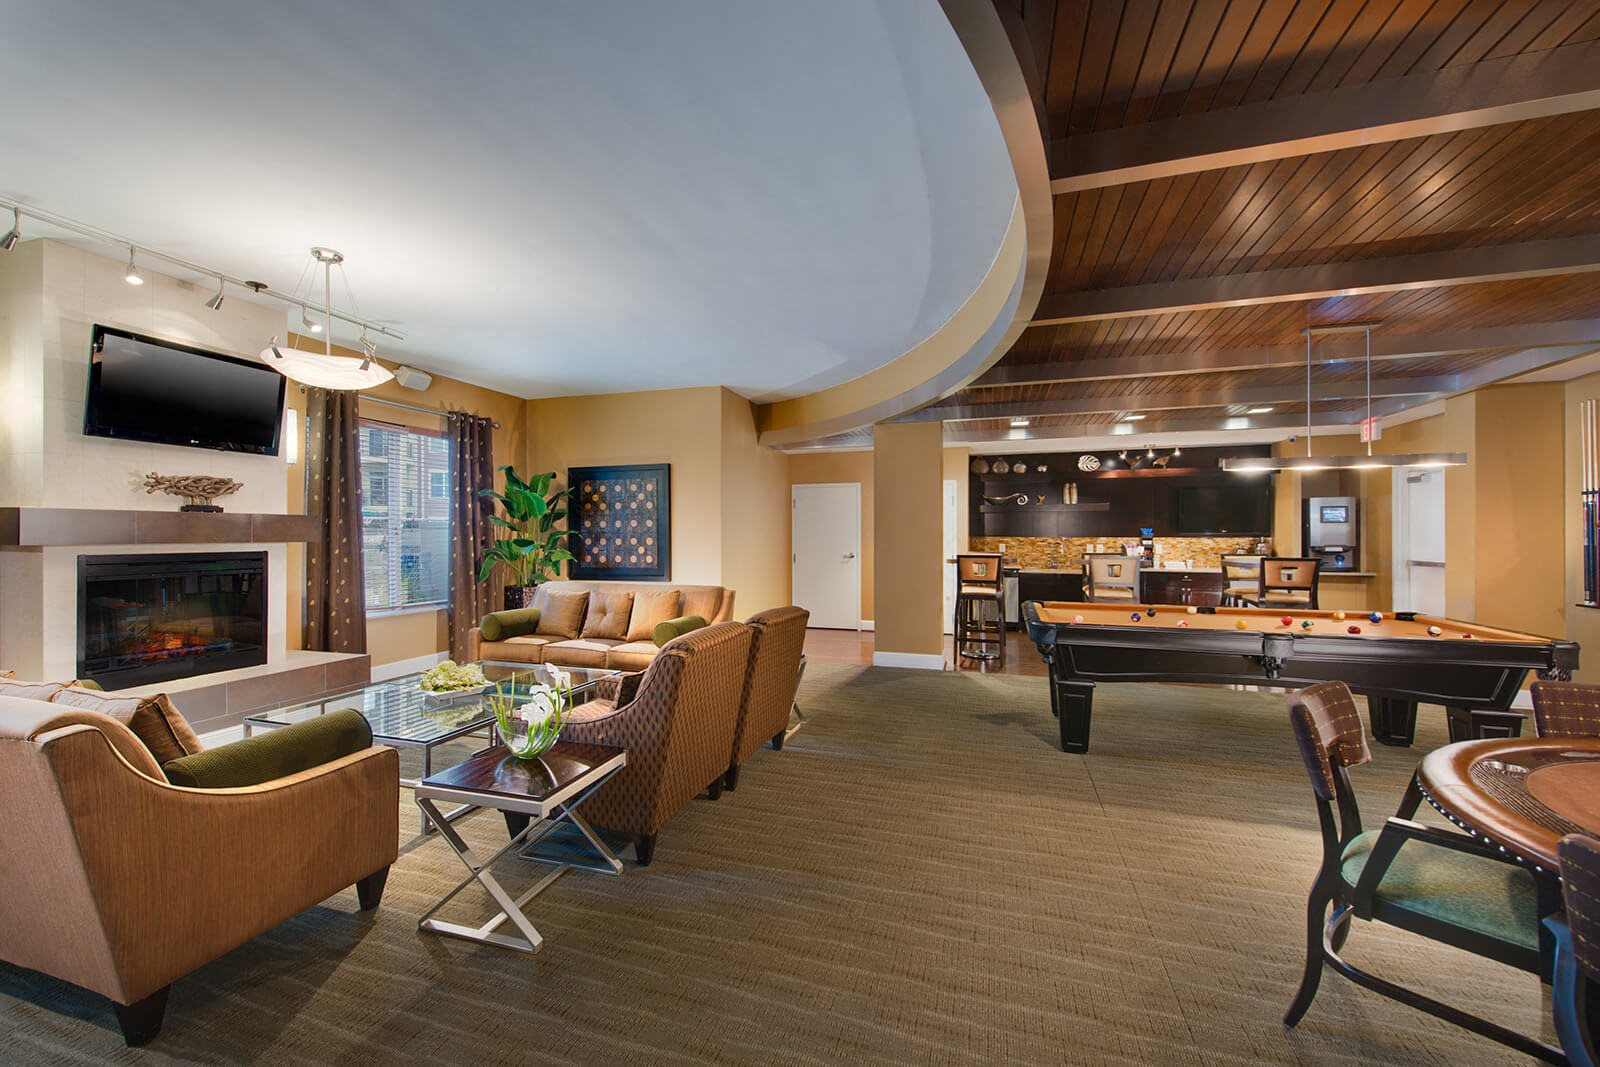 Large Clubroom With Fireplace at The Ridgewood by Windsor, Fairfax, VA